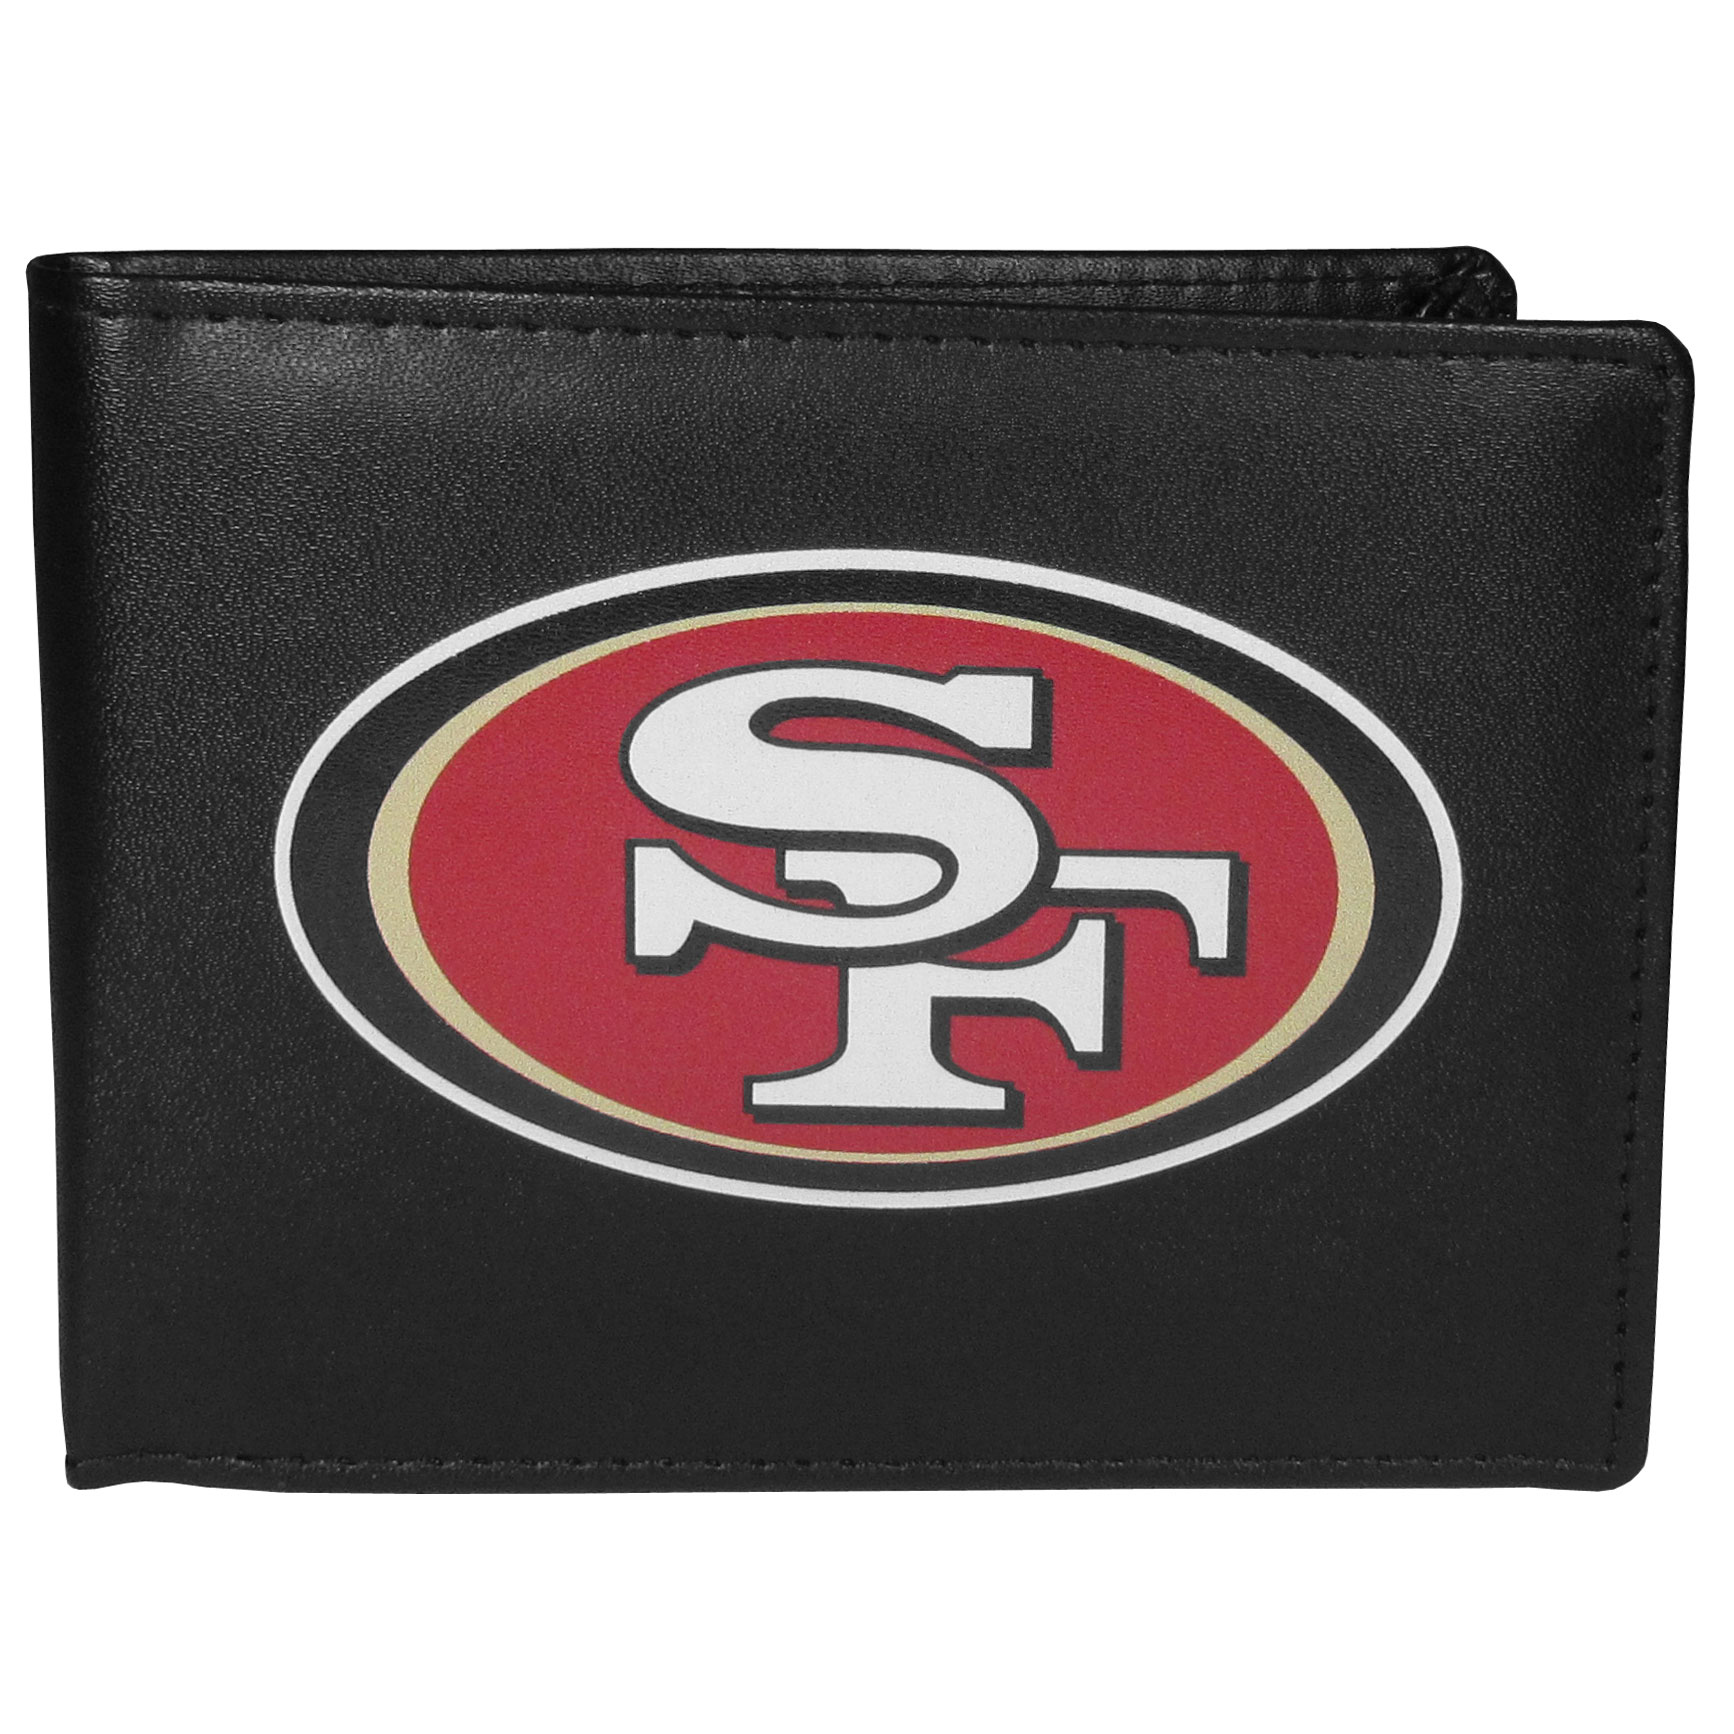 San Francisco 49ers Bi-fold Wallet Large Logo - Sports fans do not have to sacrifice style with this classic bi-fold wallet that sports the San Francisco 49ers extra large logo. This men's fashion accessory has a leather grain look and expert craftmanship for a quality wallet at a great price. The wallet features inner credit card slots, windowed ID slot and a large billfold pocket. The front of the wallet features a printed team logo.